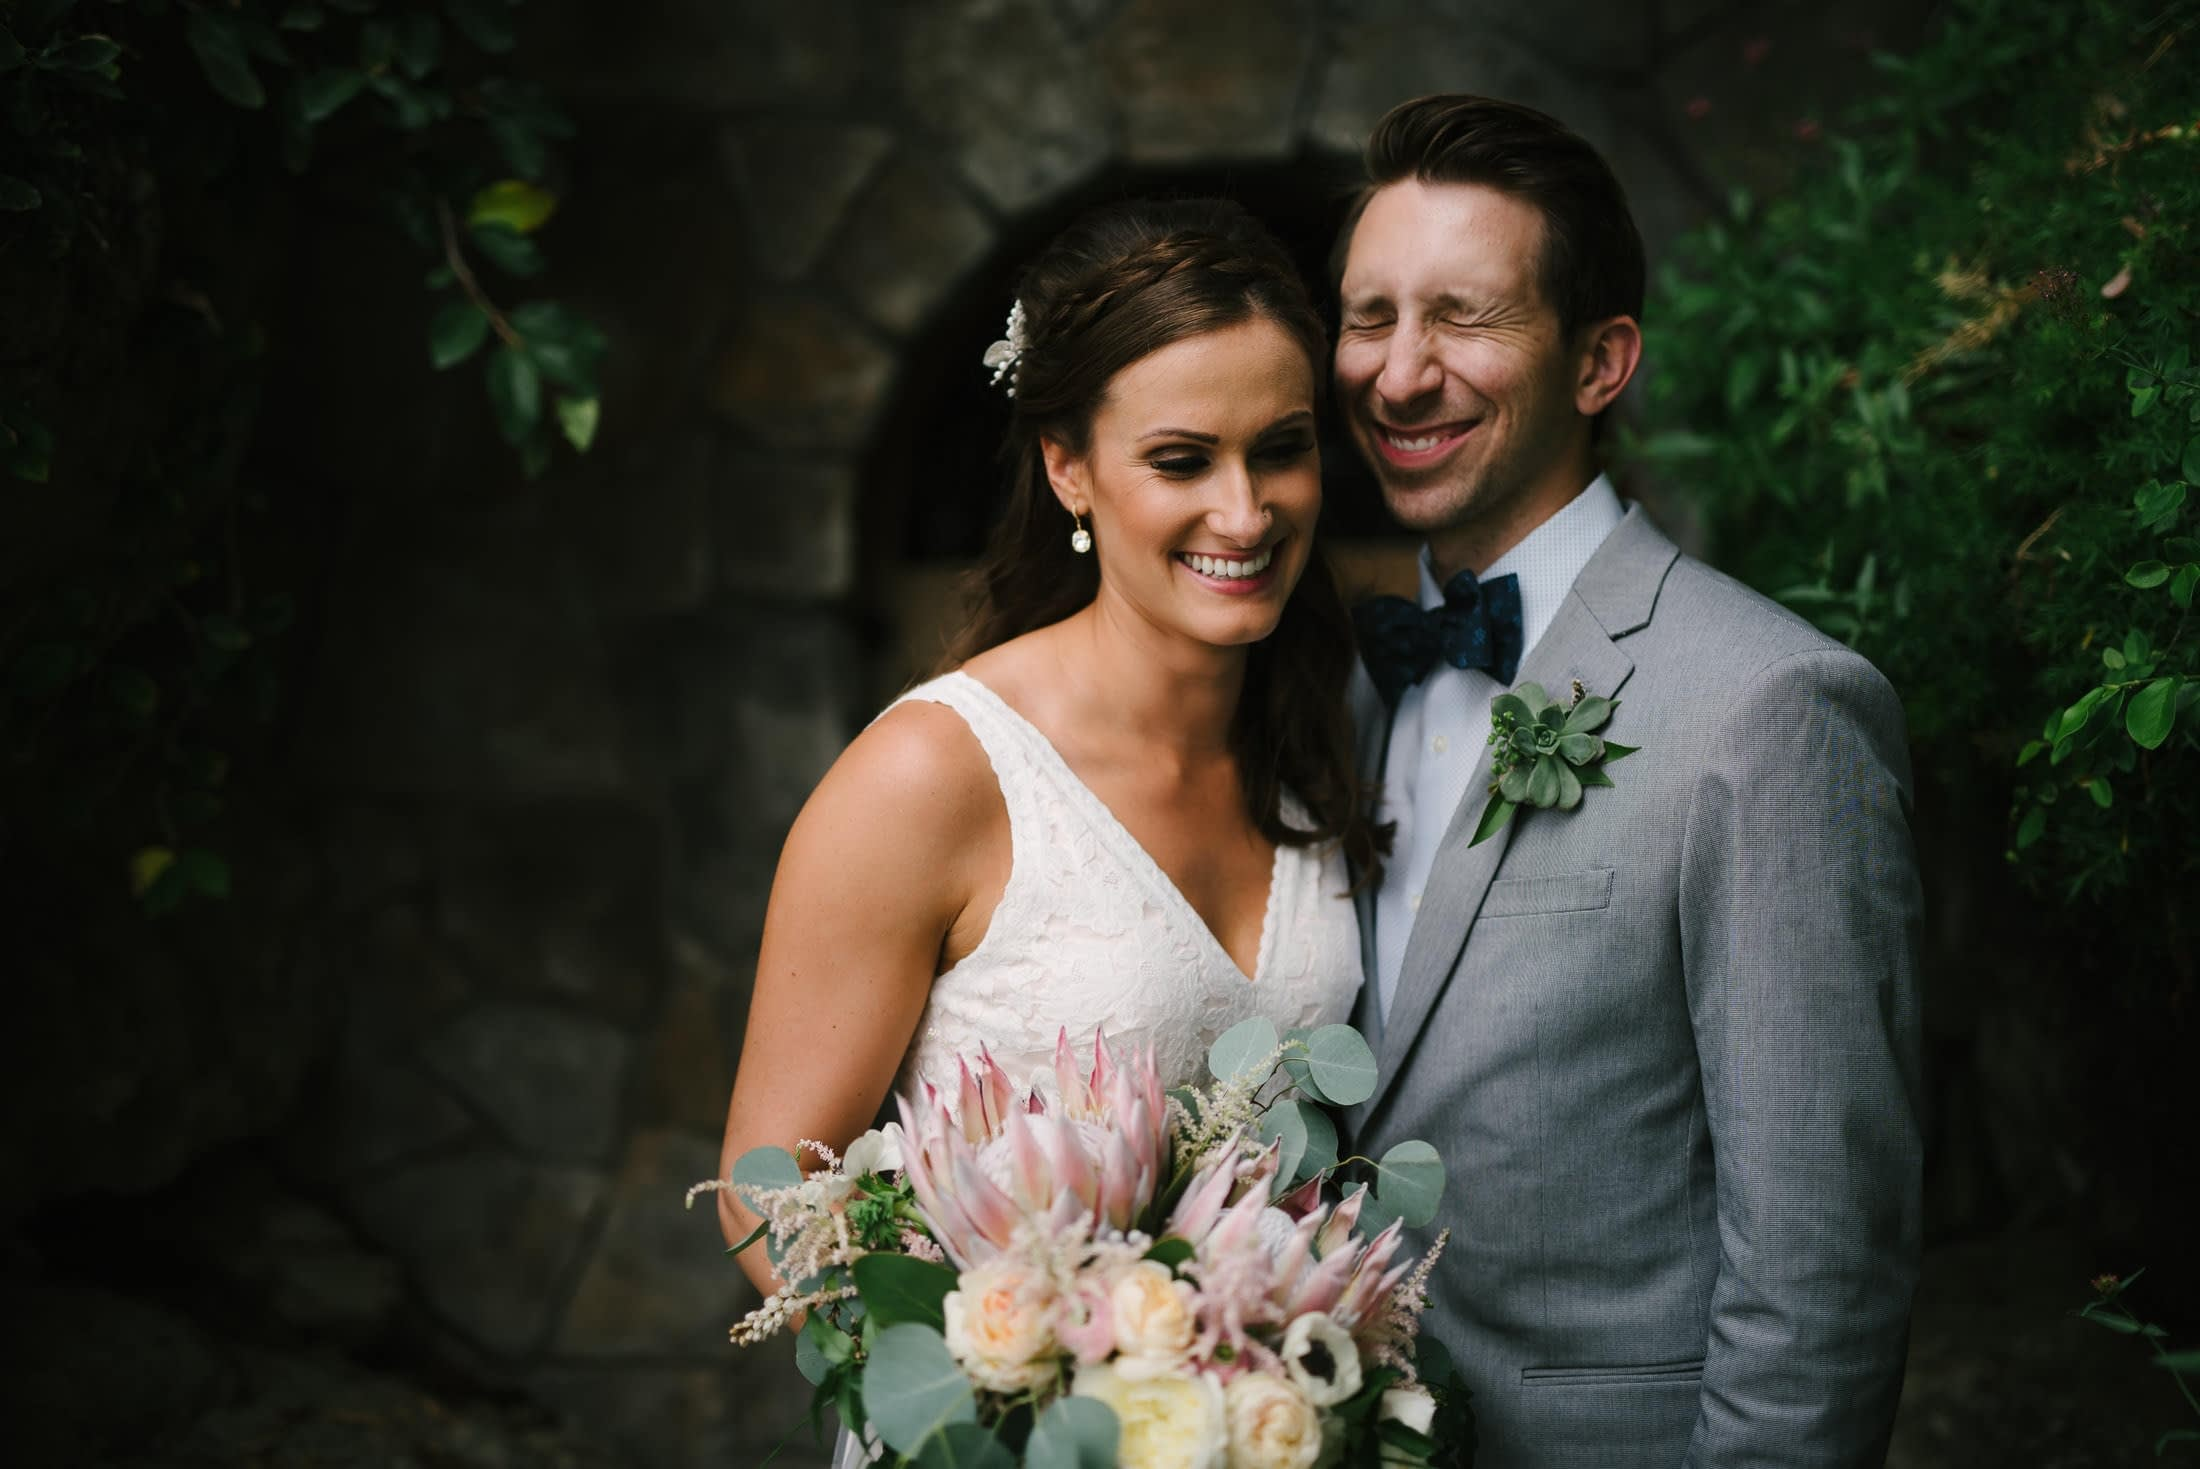 brownstone gardens wedding portrait